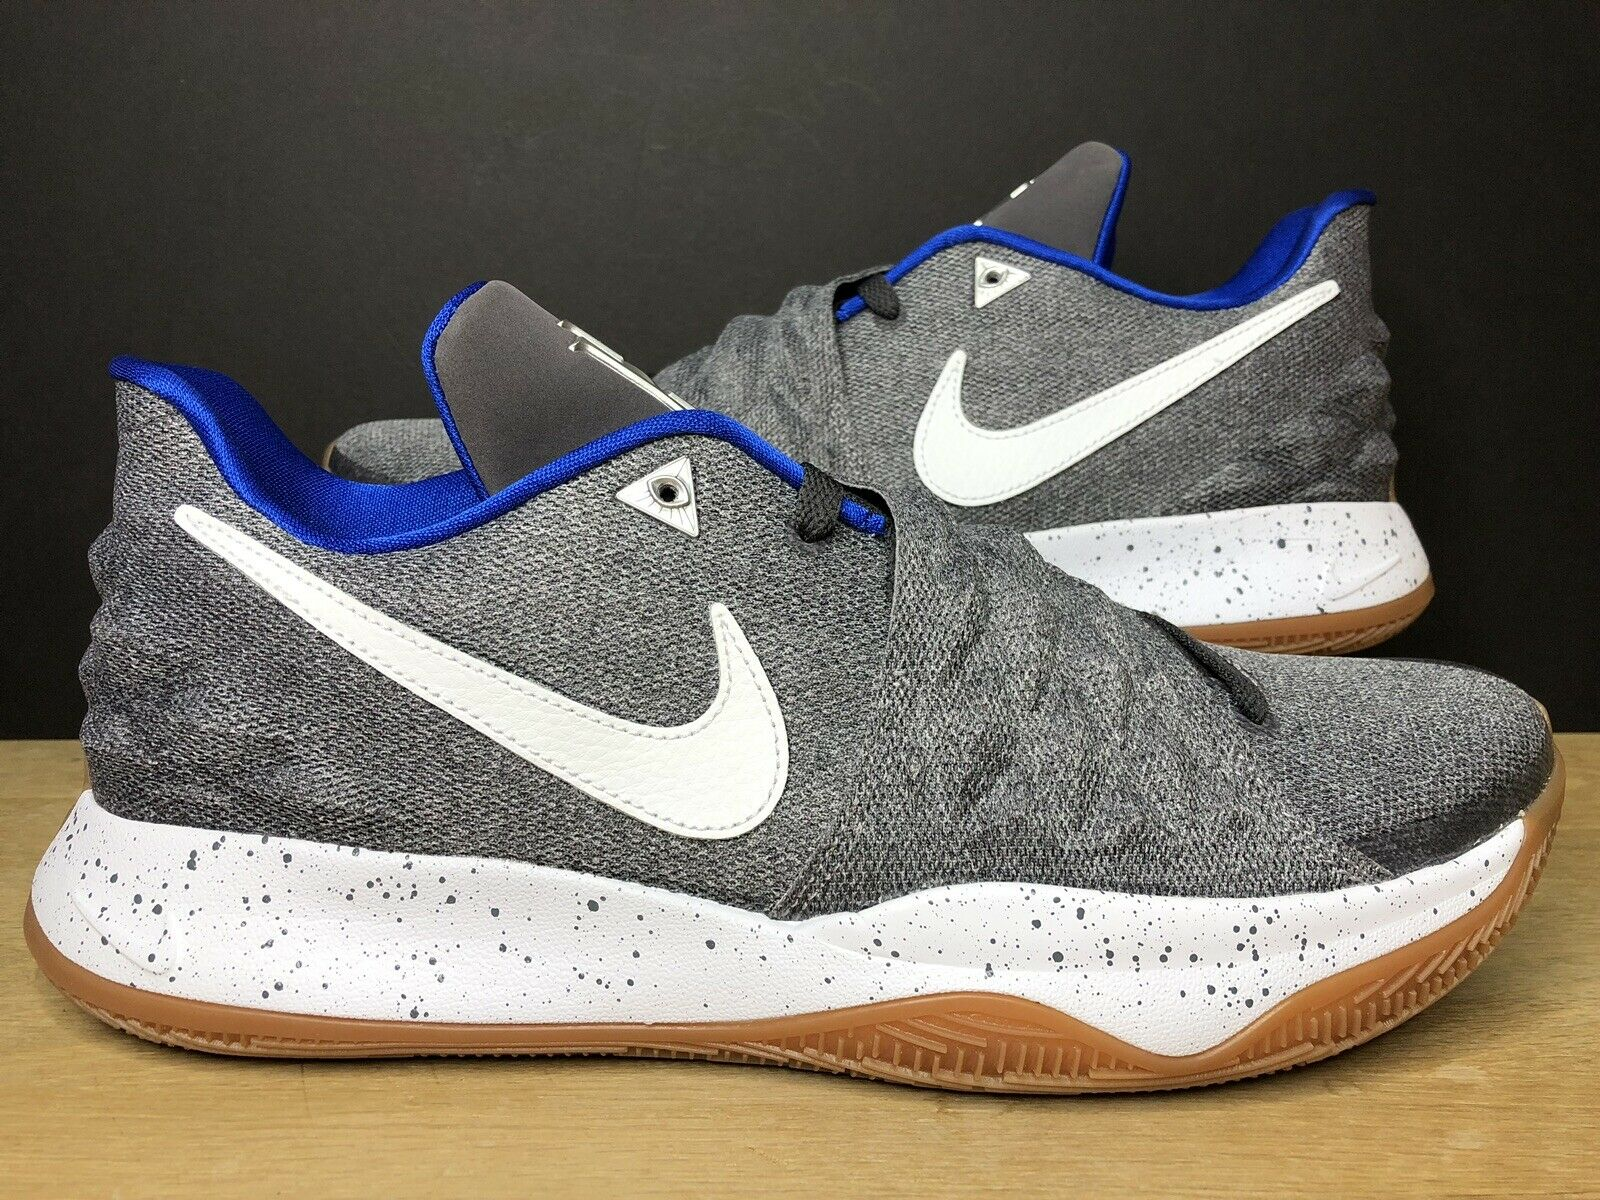 Nike Kyrie 4 Low Uncle Drew Atmosphere Grey Gum Irvin AO8979-005 Size 13